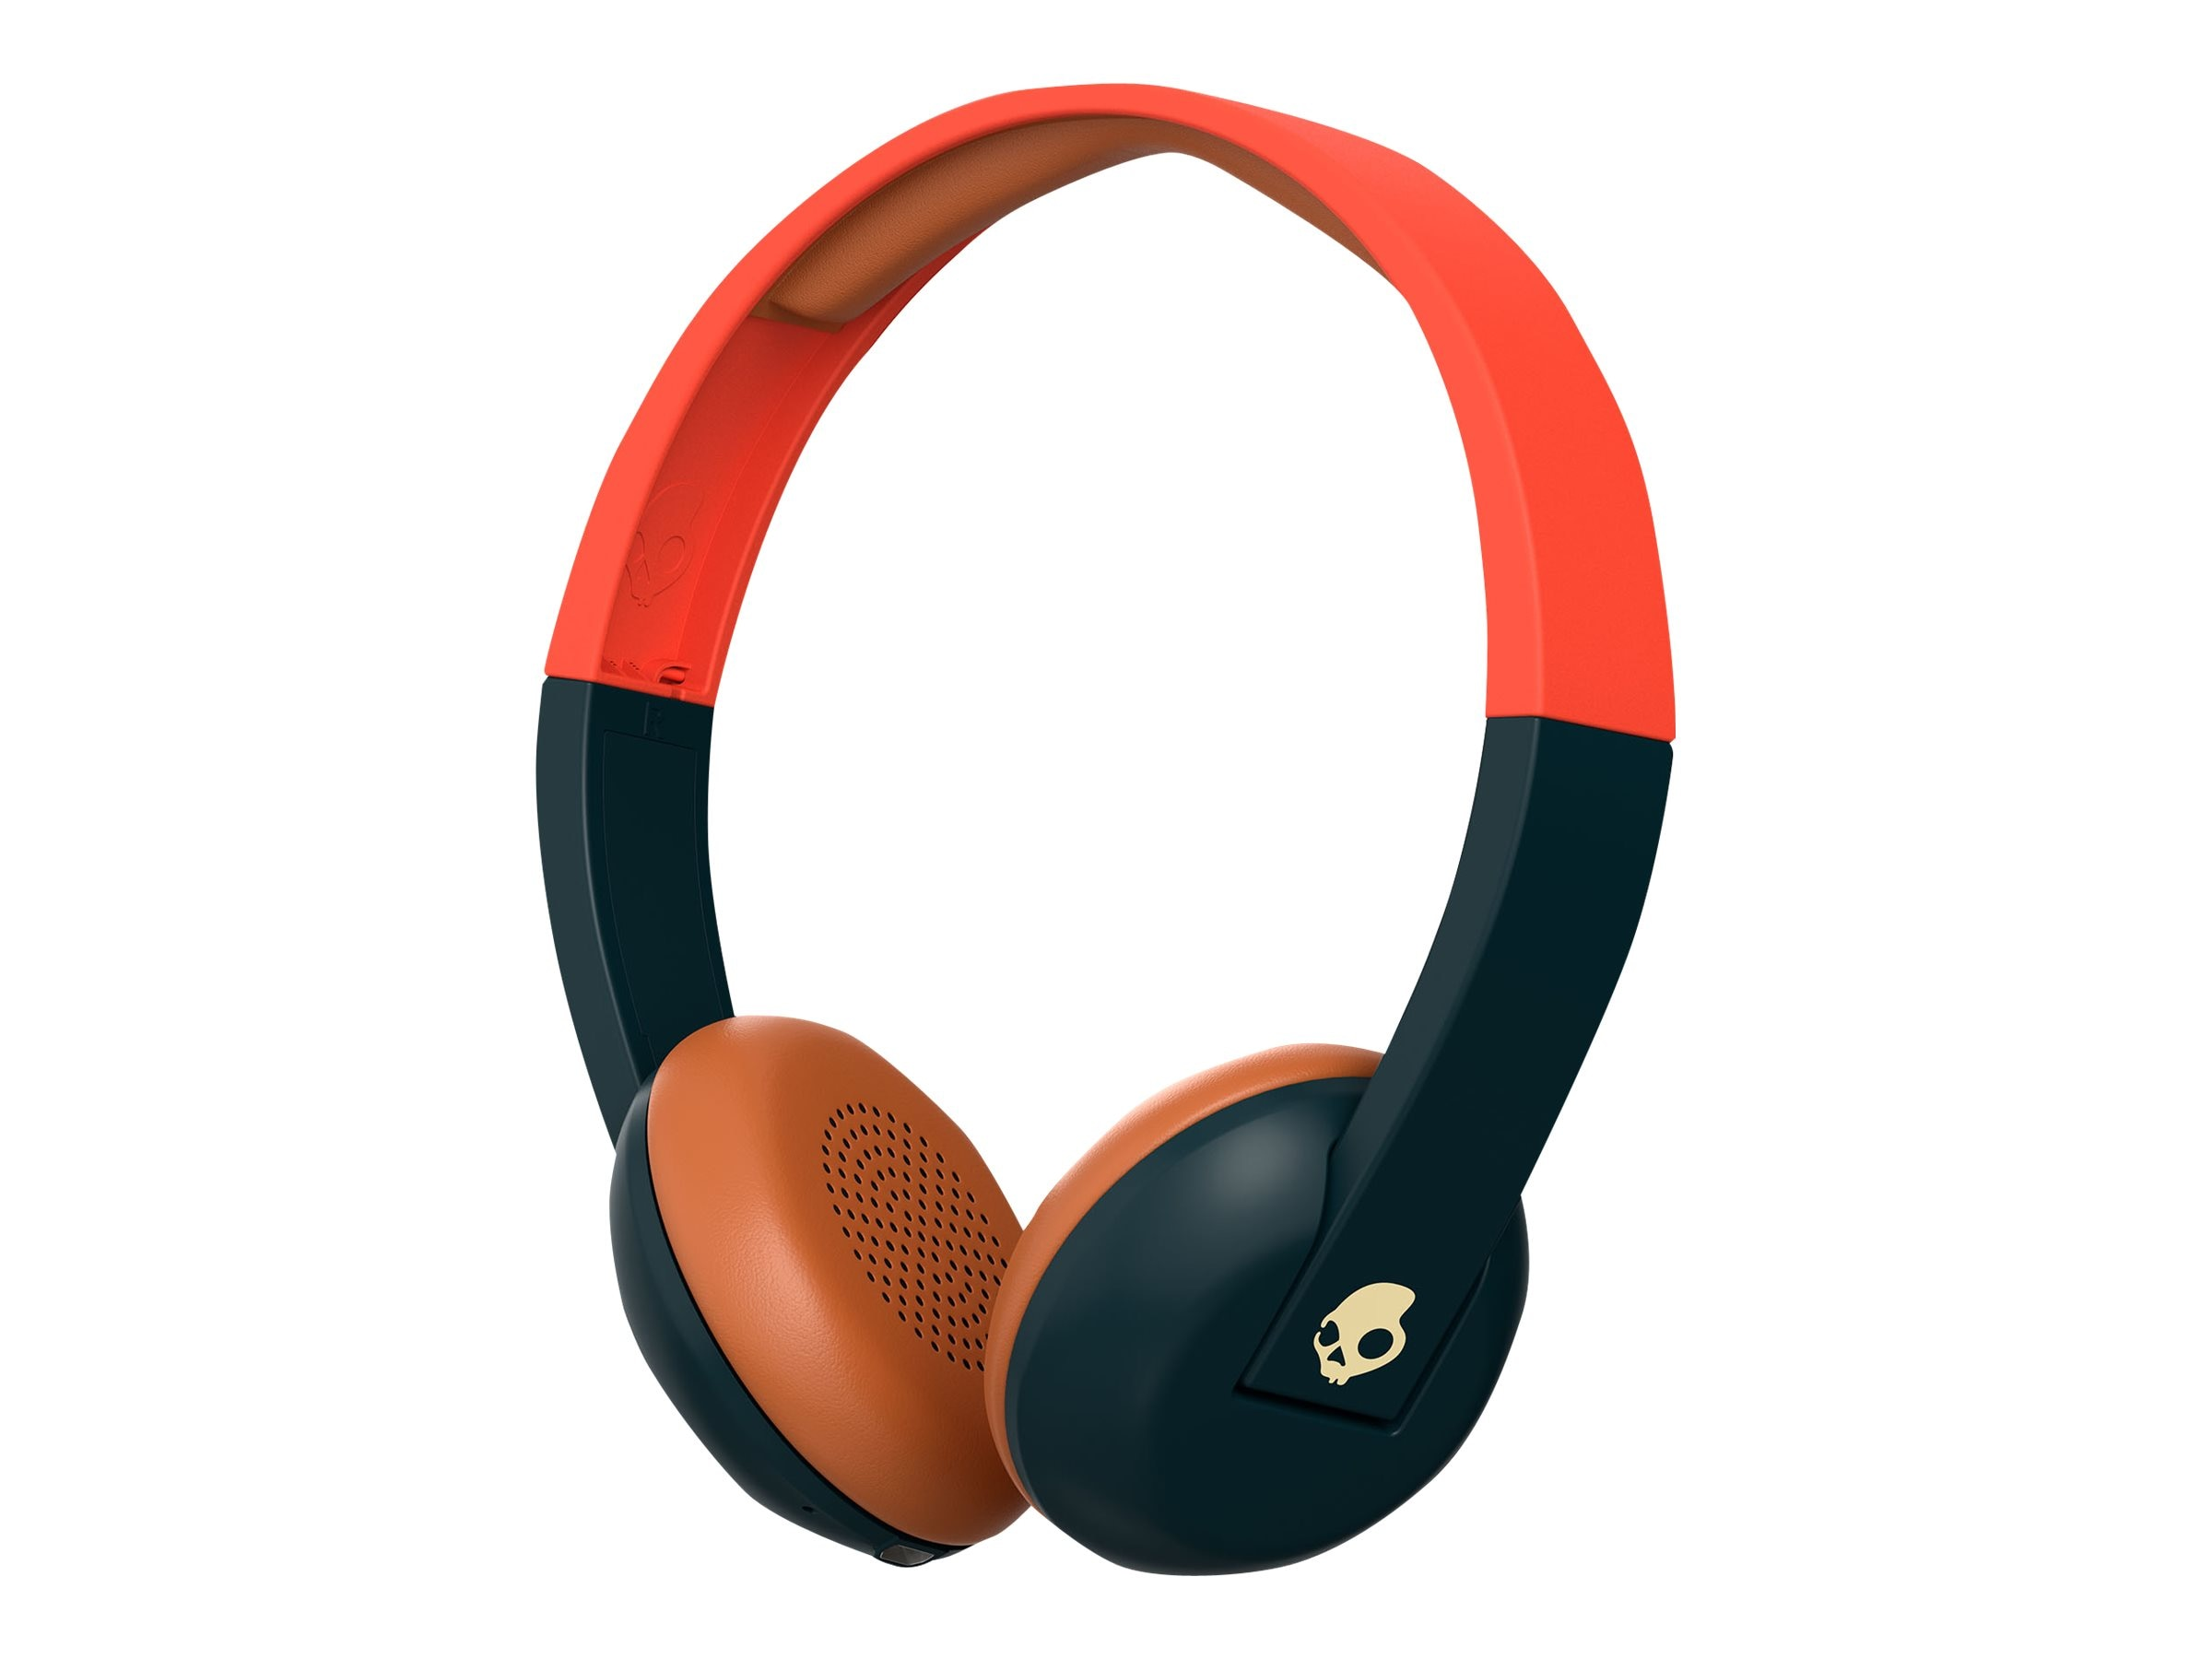 Skullcandy Uproar BT Headphones - Explore Evergreen, S5URHW-510, 23836960, Headsets (w/ microphone)